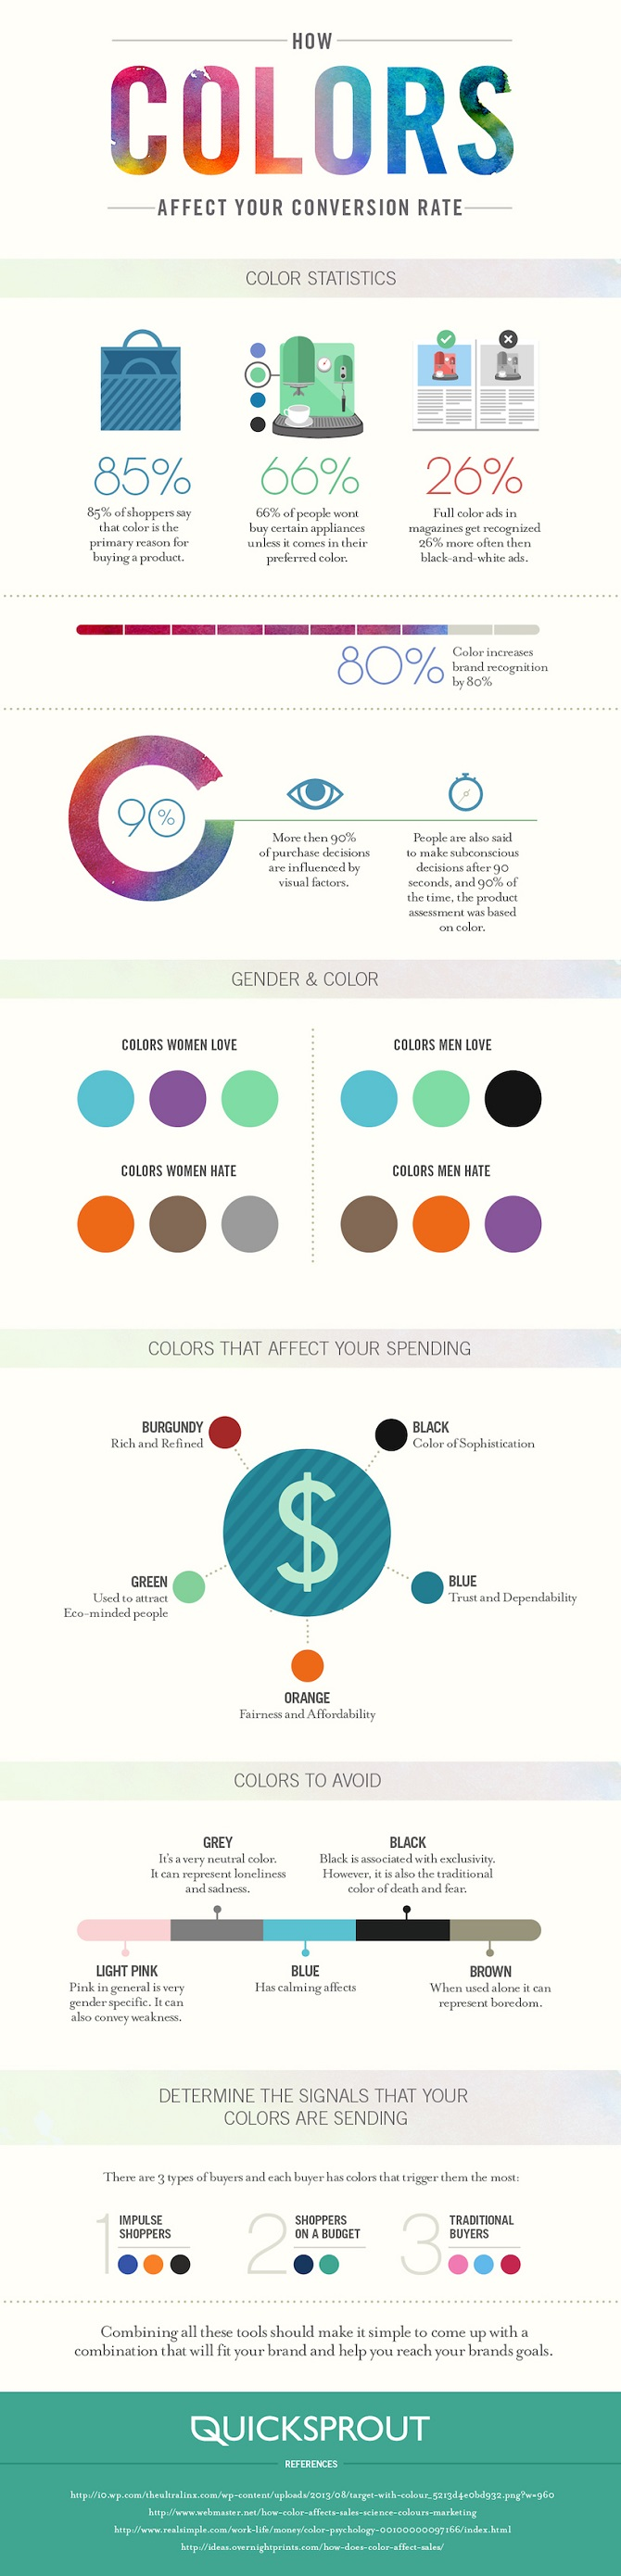 How Colors Affect Conversion Rate Marketing